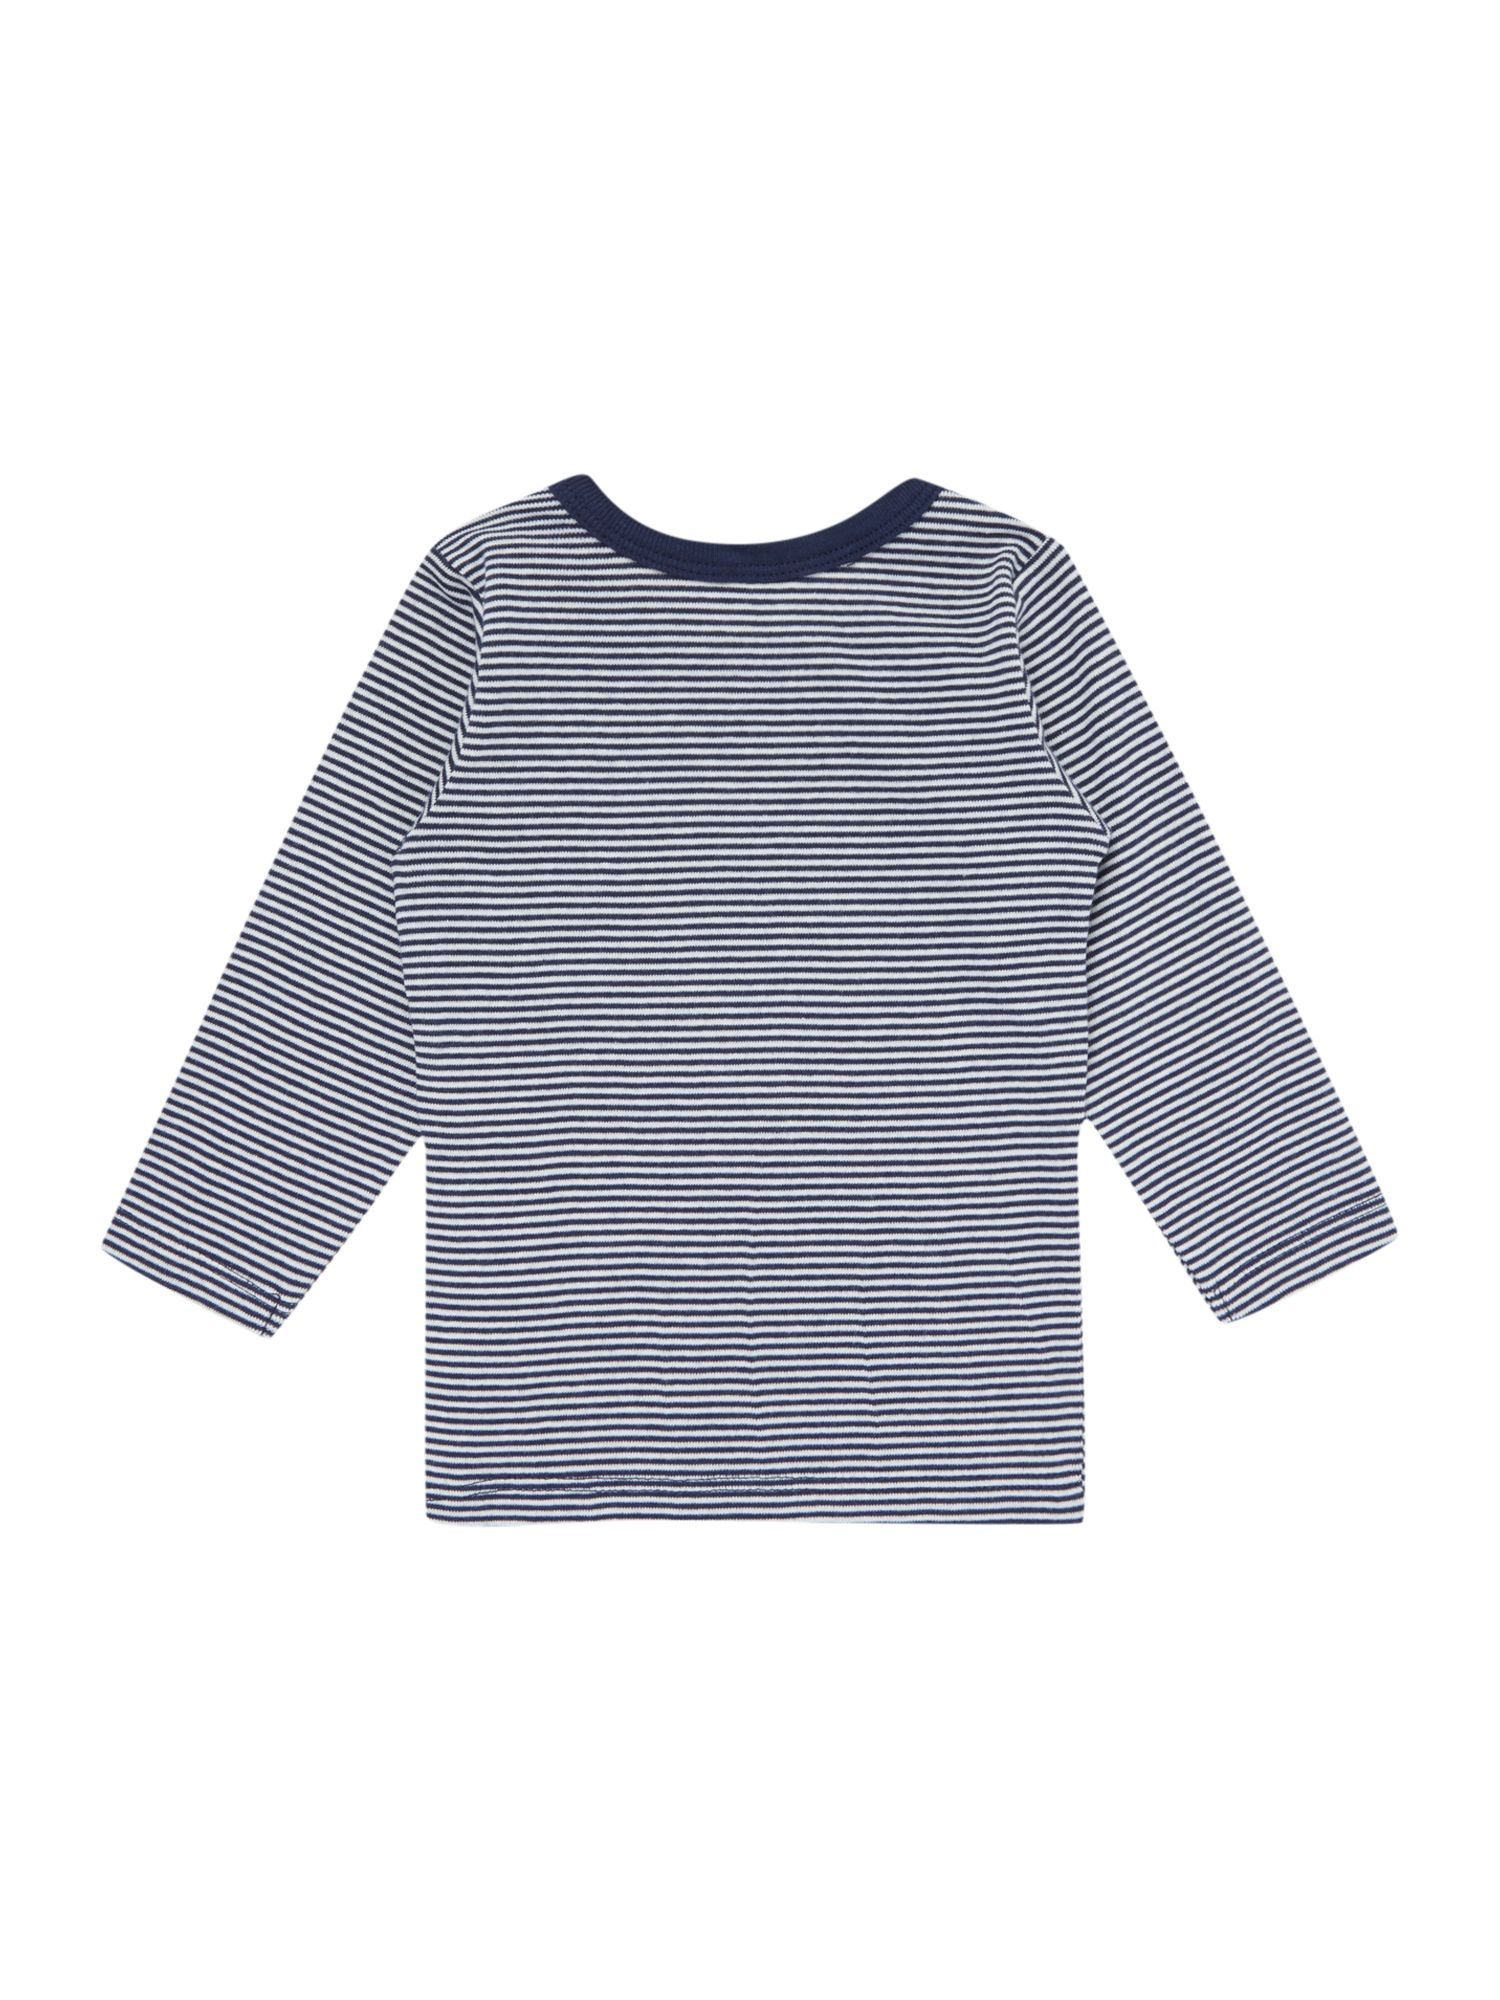 Baby stripe top